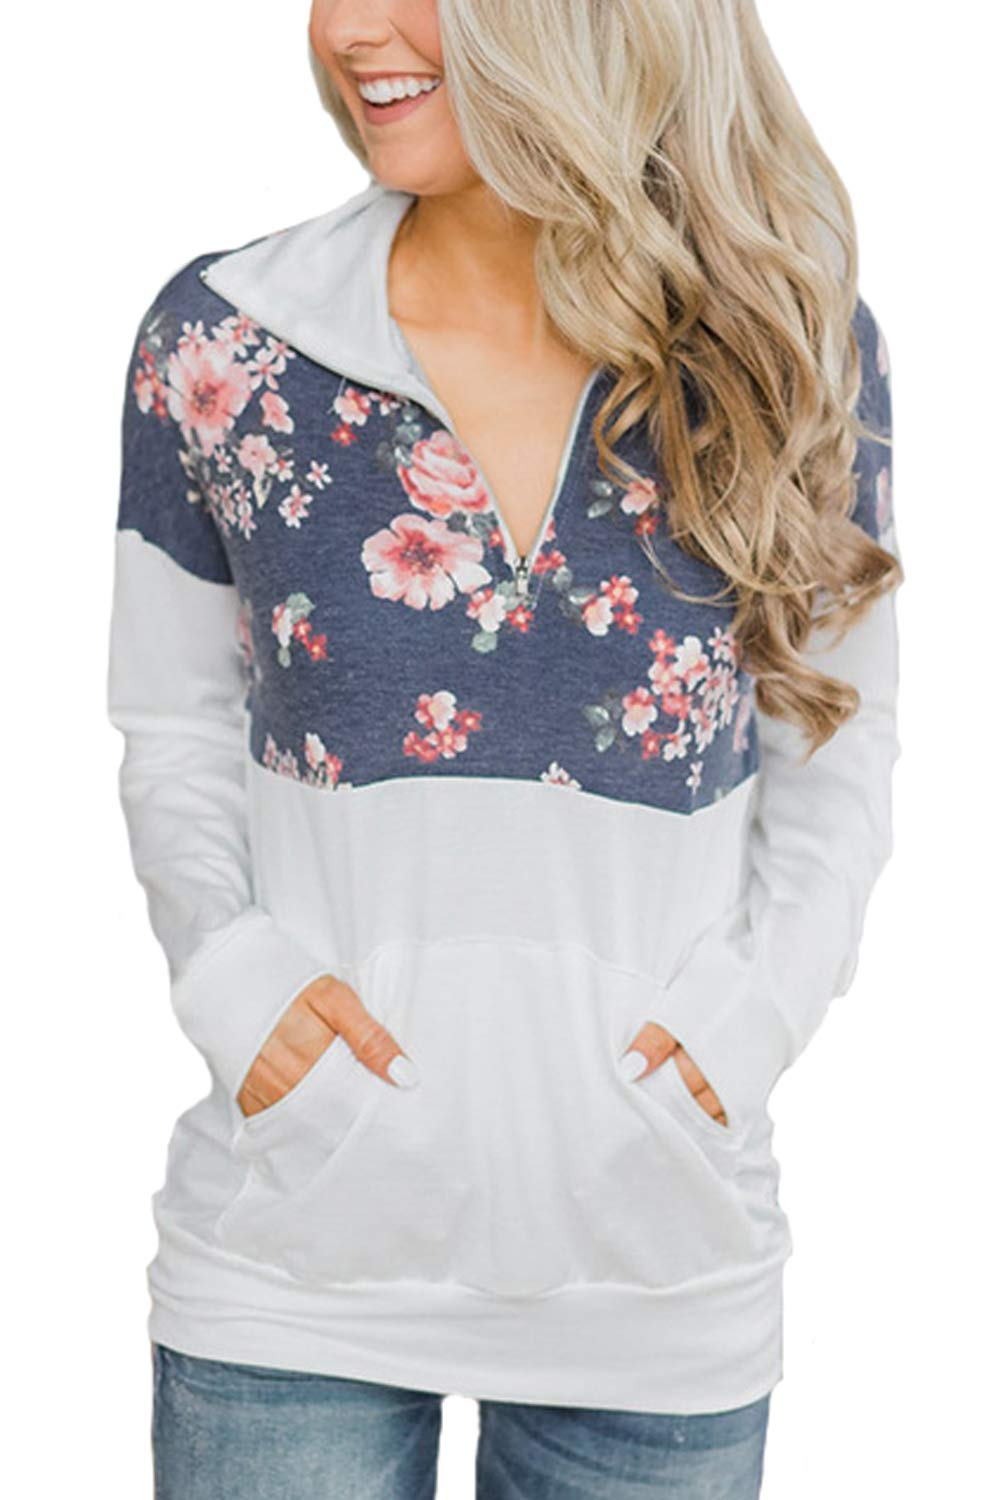 Assivia Womens Floral Print Sweatshirt Casual Pullovers Round Neck Long Sleeve Tops